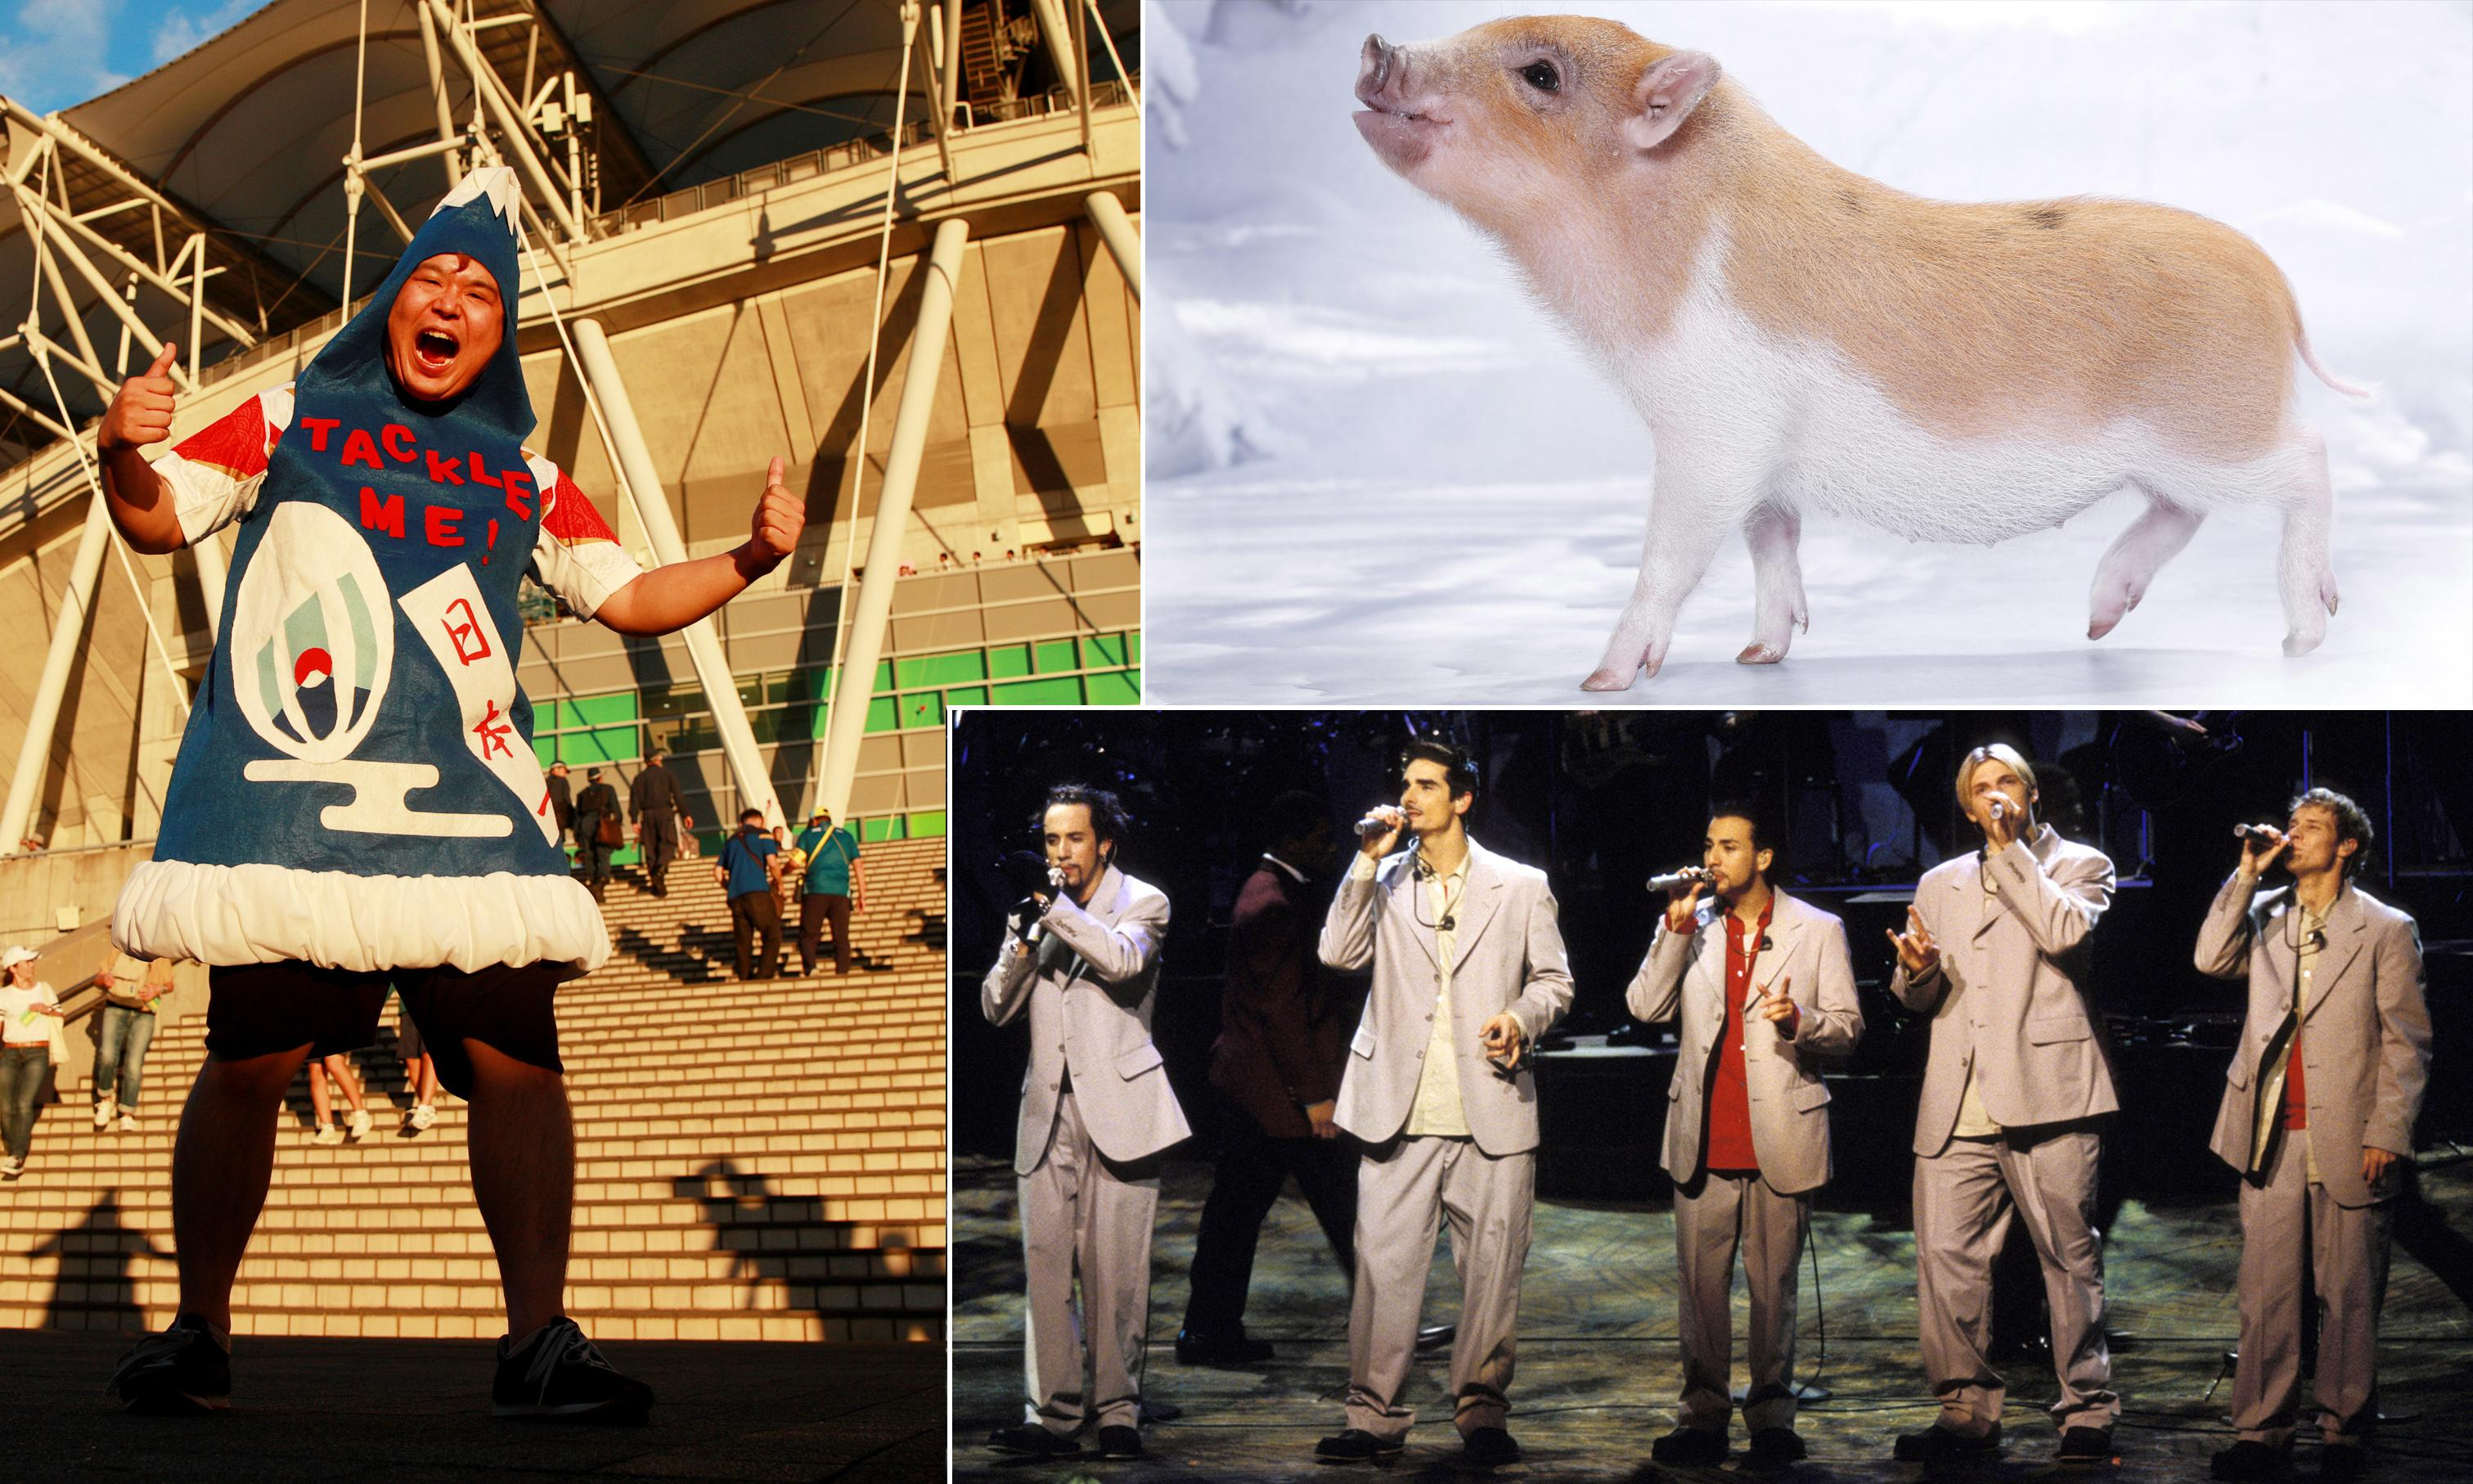 Tales from Tokyo: micropig cafes, karaoke regrets and 500,000 fans having fun